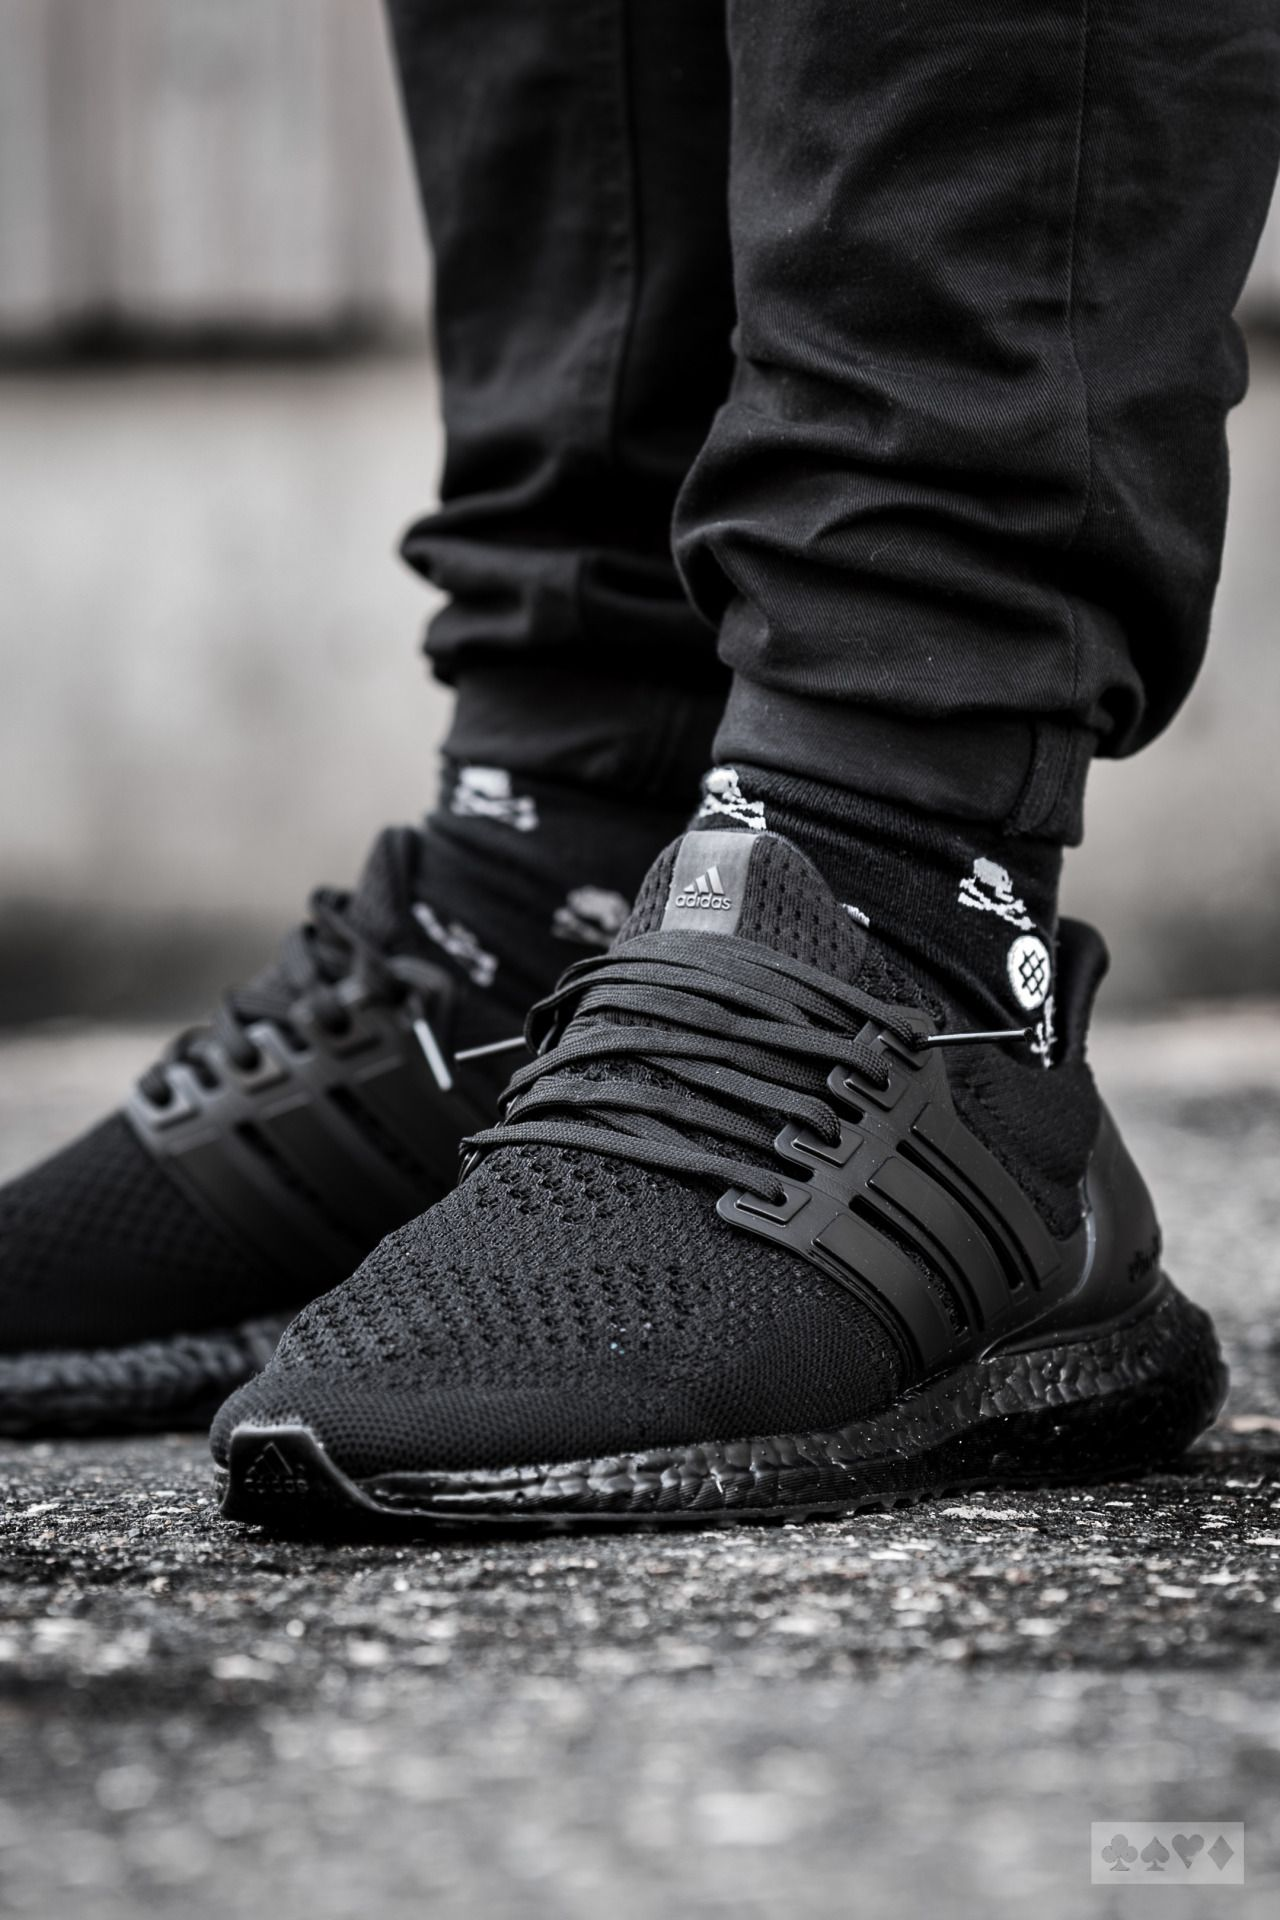 aec18e8eca2 Adidas Ultra Boost Triple Black - 2016 Launch your own makeup line.   viaGlamour